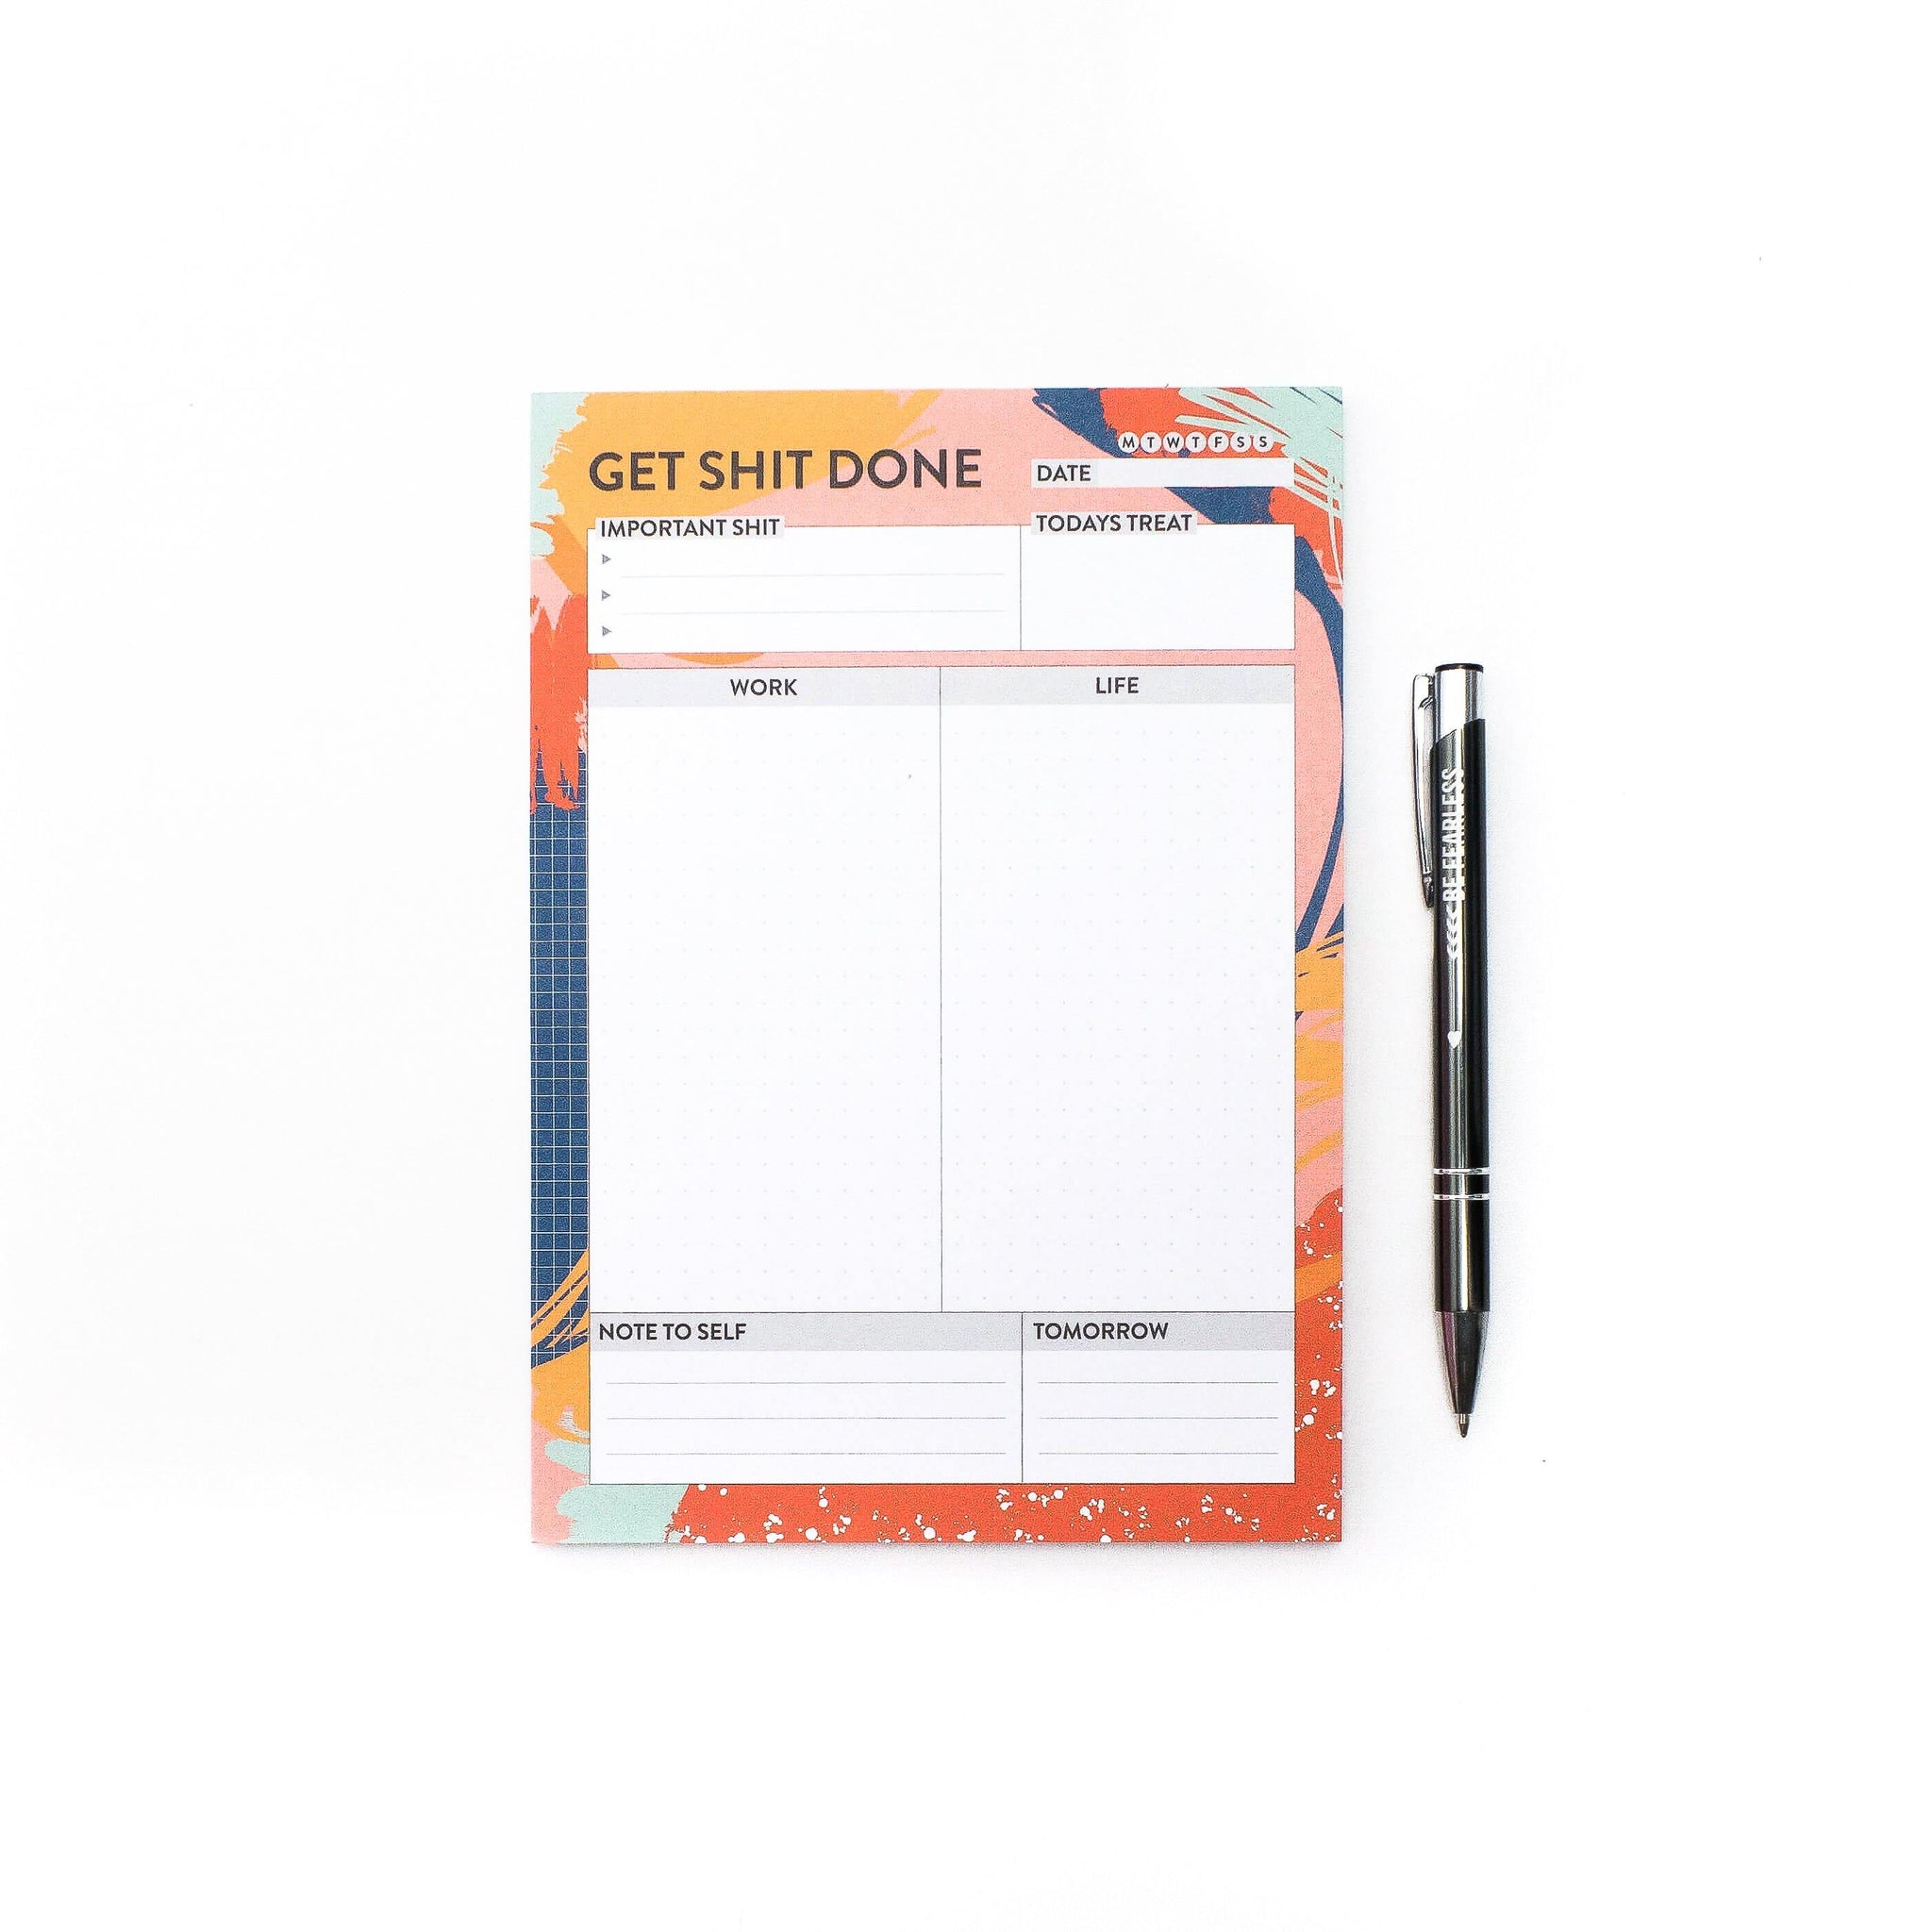 Get Sh*t Done - A5 Daily Planner Art Print, Stationery- Soul & Fire